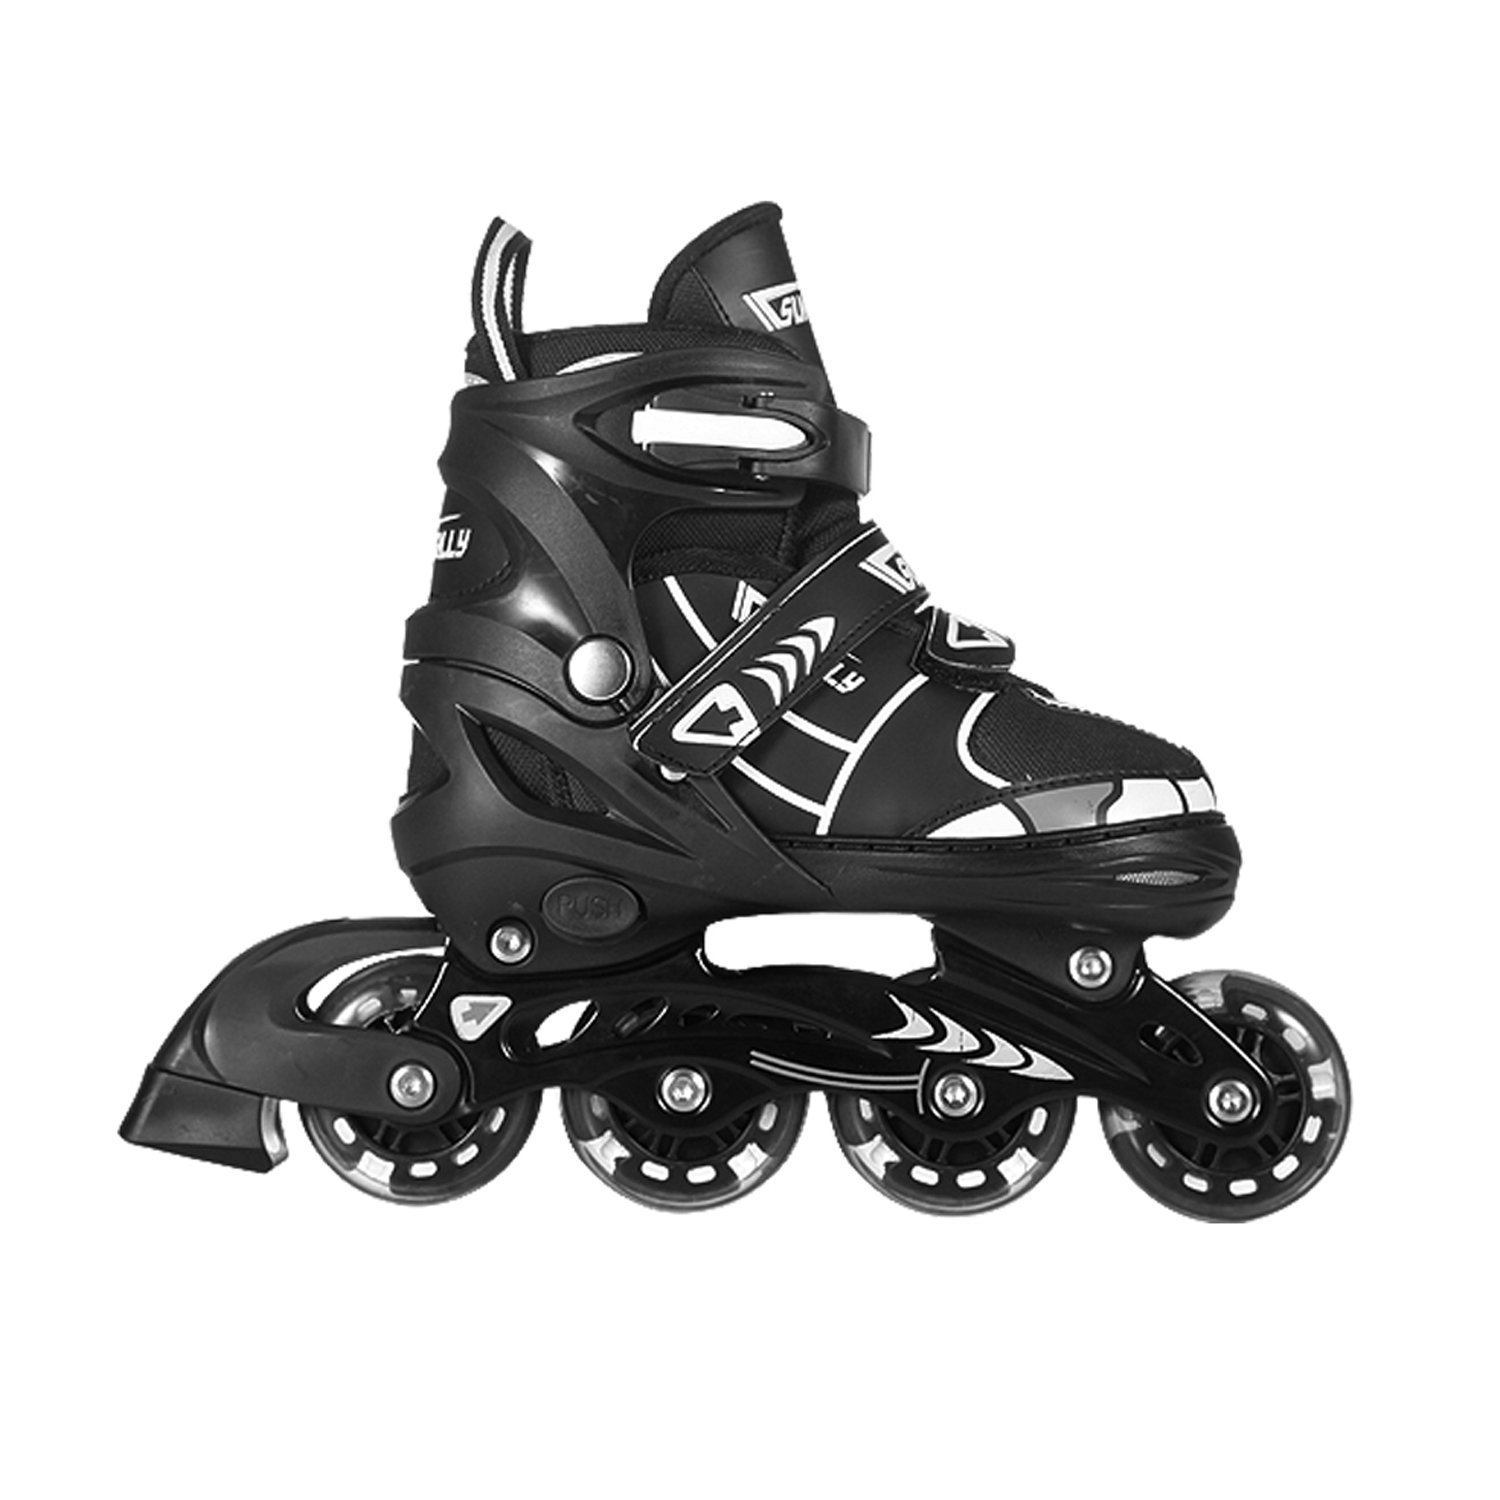 Tuko Rollerblade Adjustable Inline Skates for Boys (US little kid 12M/13M/1M)